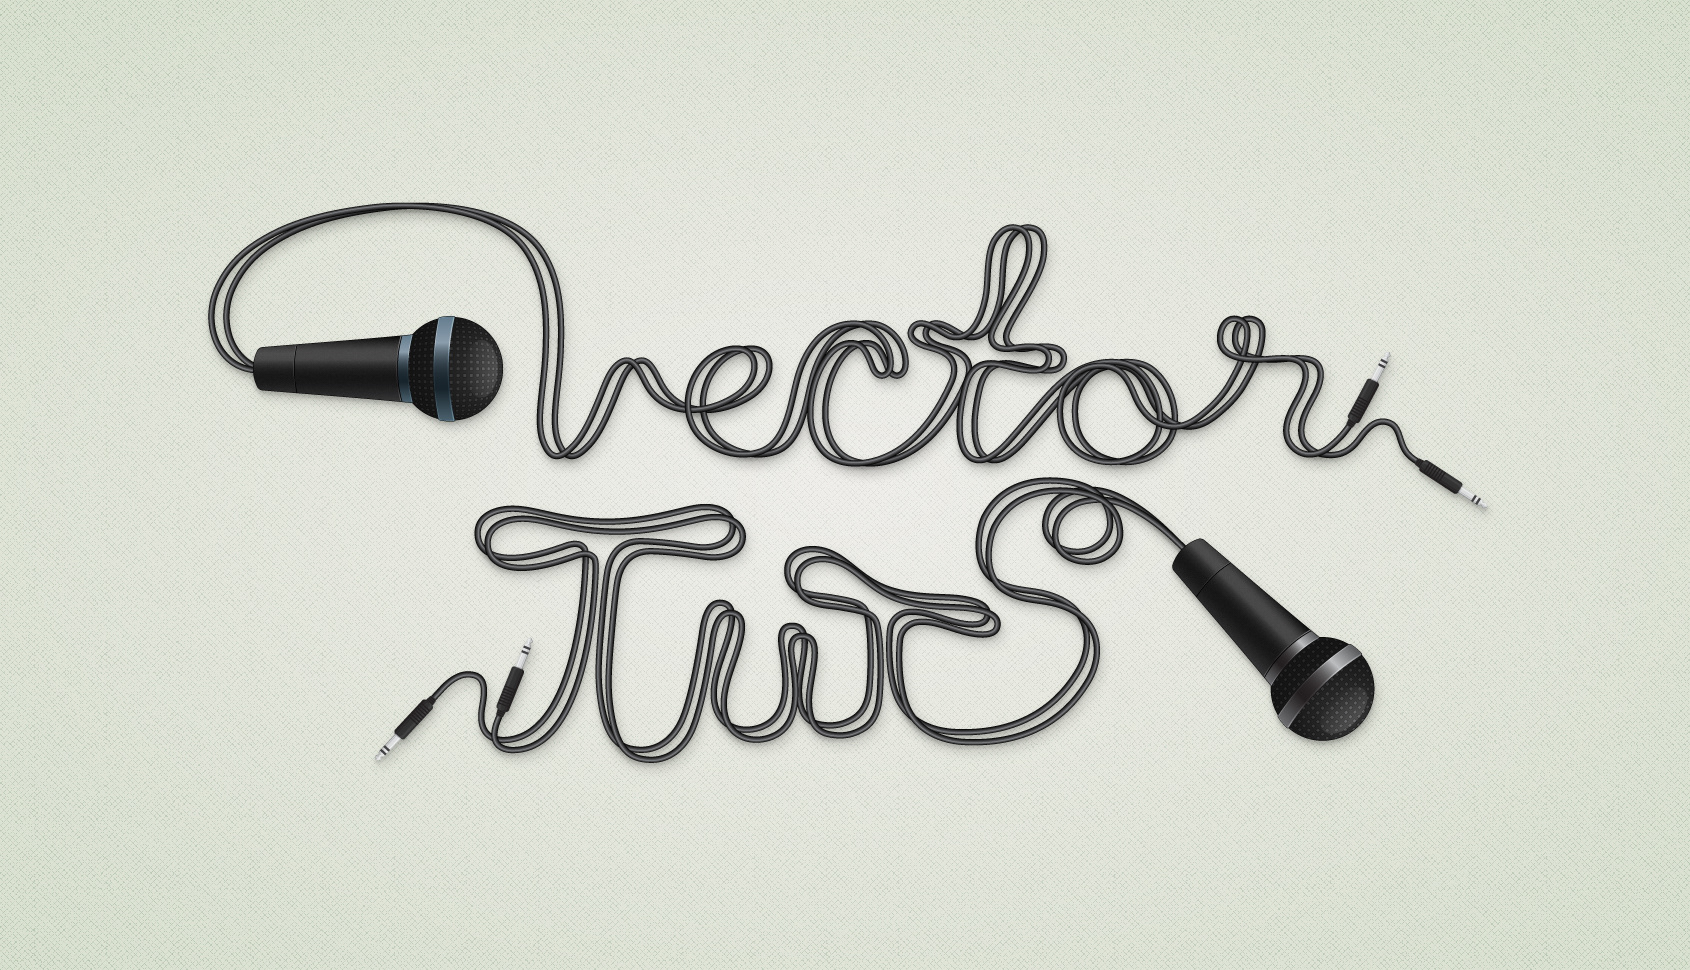 Andrei Marius - Cable Text Effect with Microphone